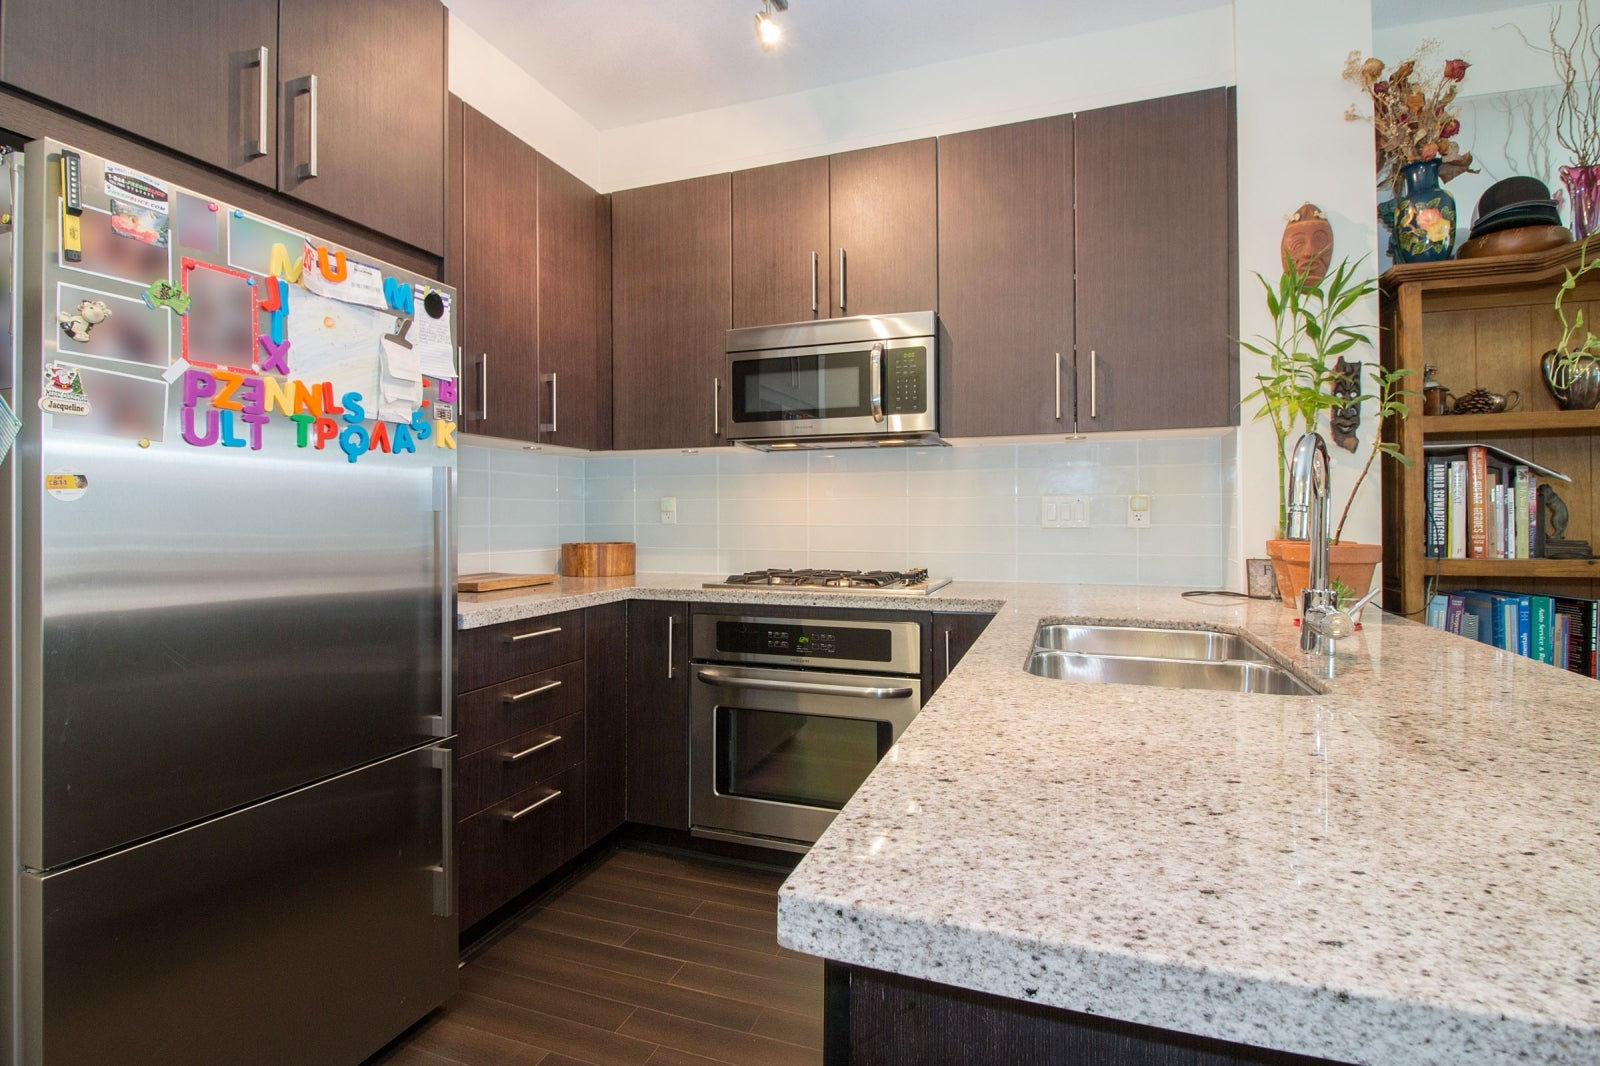 306 139 W 22ND STREET - Central Lonsdale Apartment/Condo for sale, 2 Bedrooms (R2201915) #9